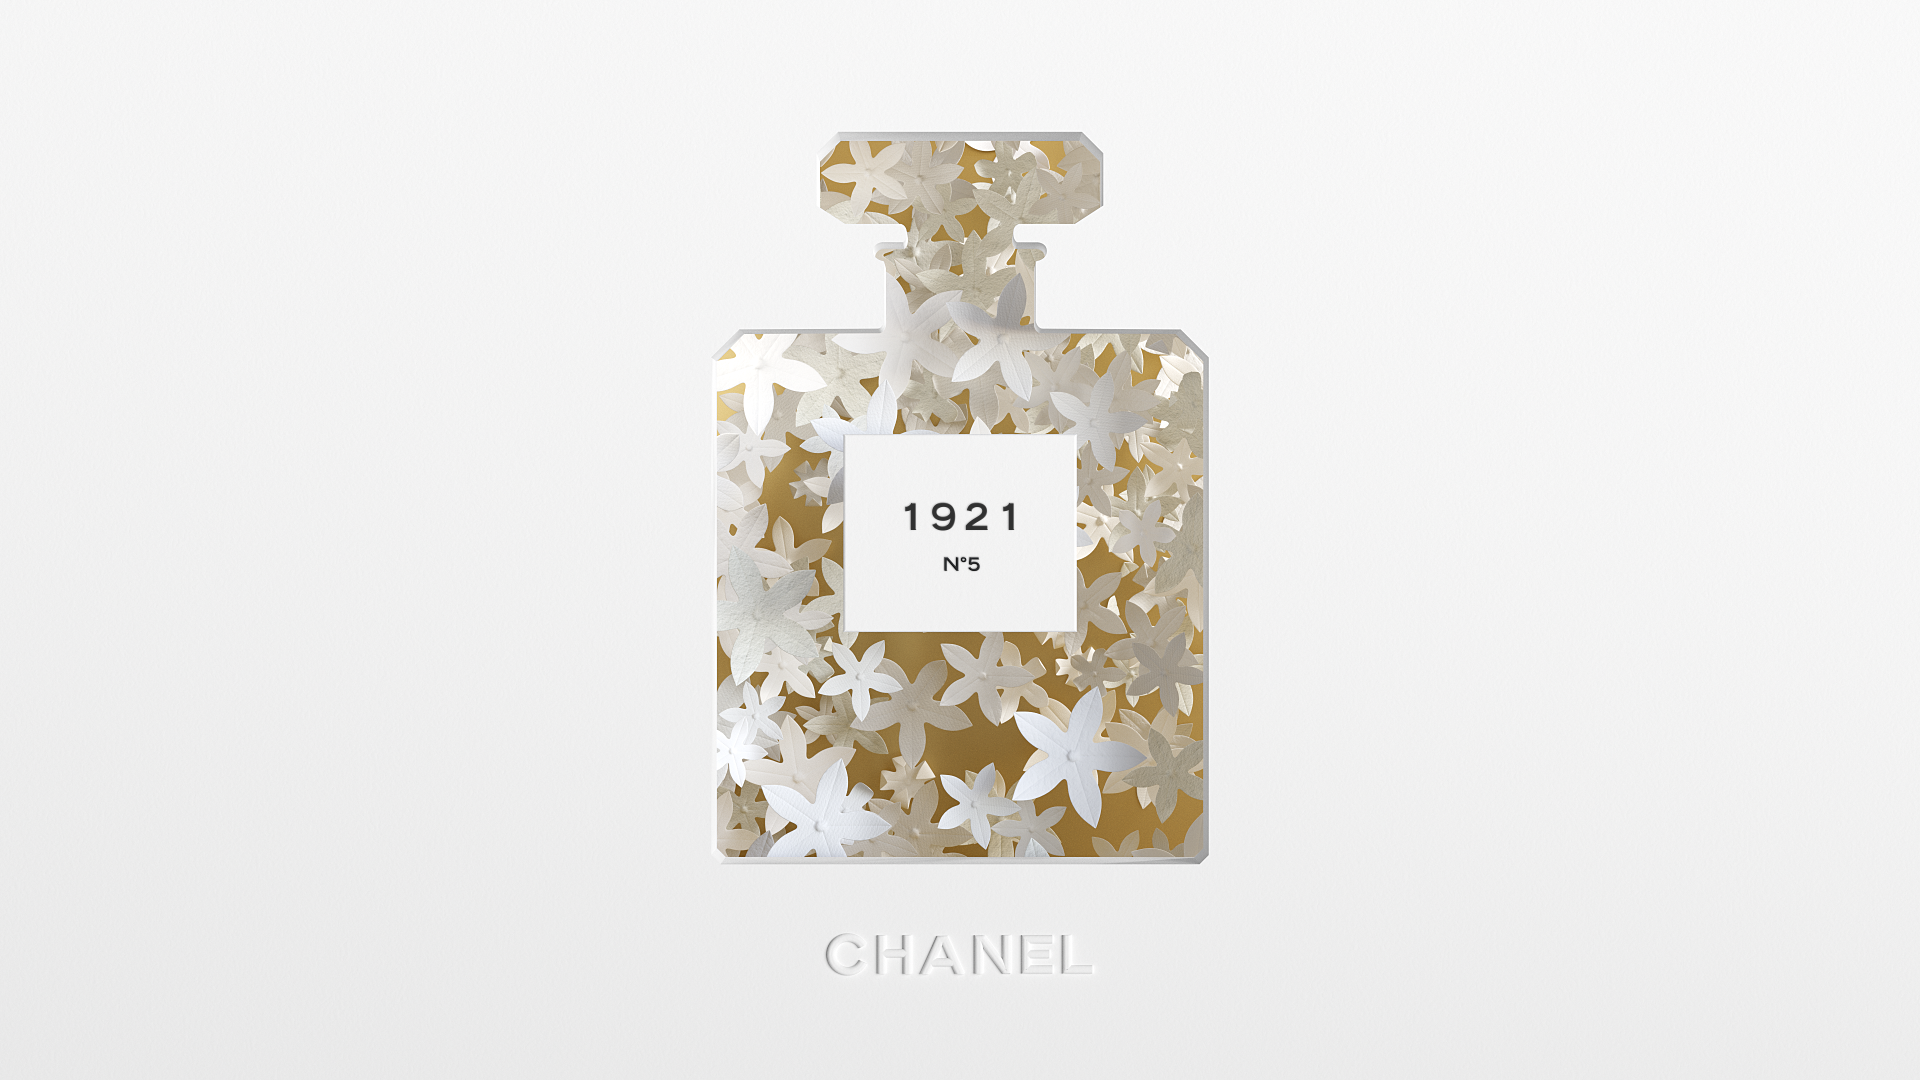 BC1015 Chanel - Best Wishes_16-9_00119.png